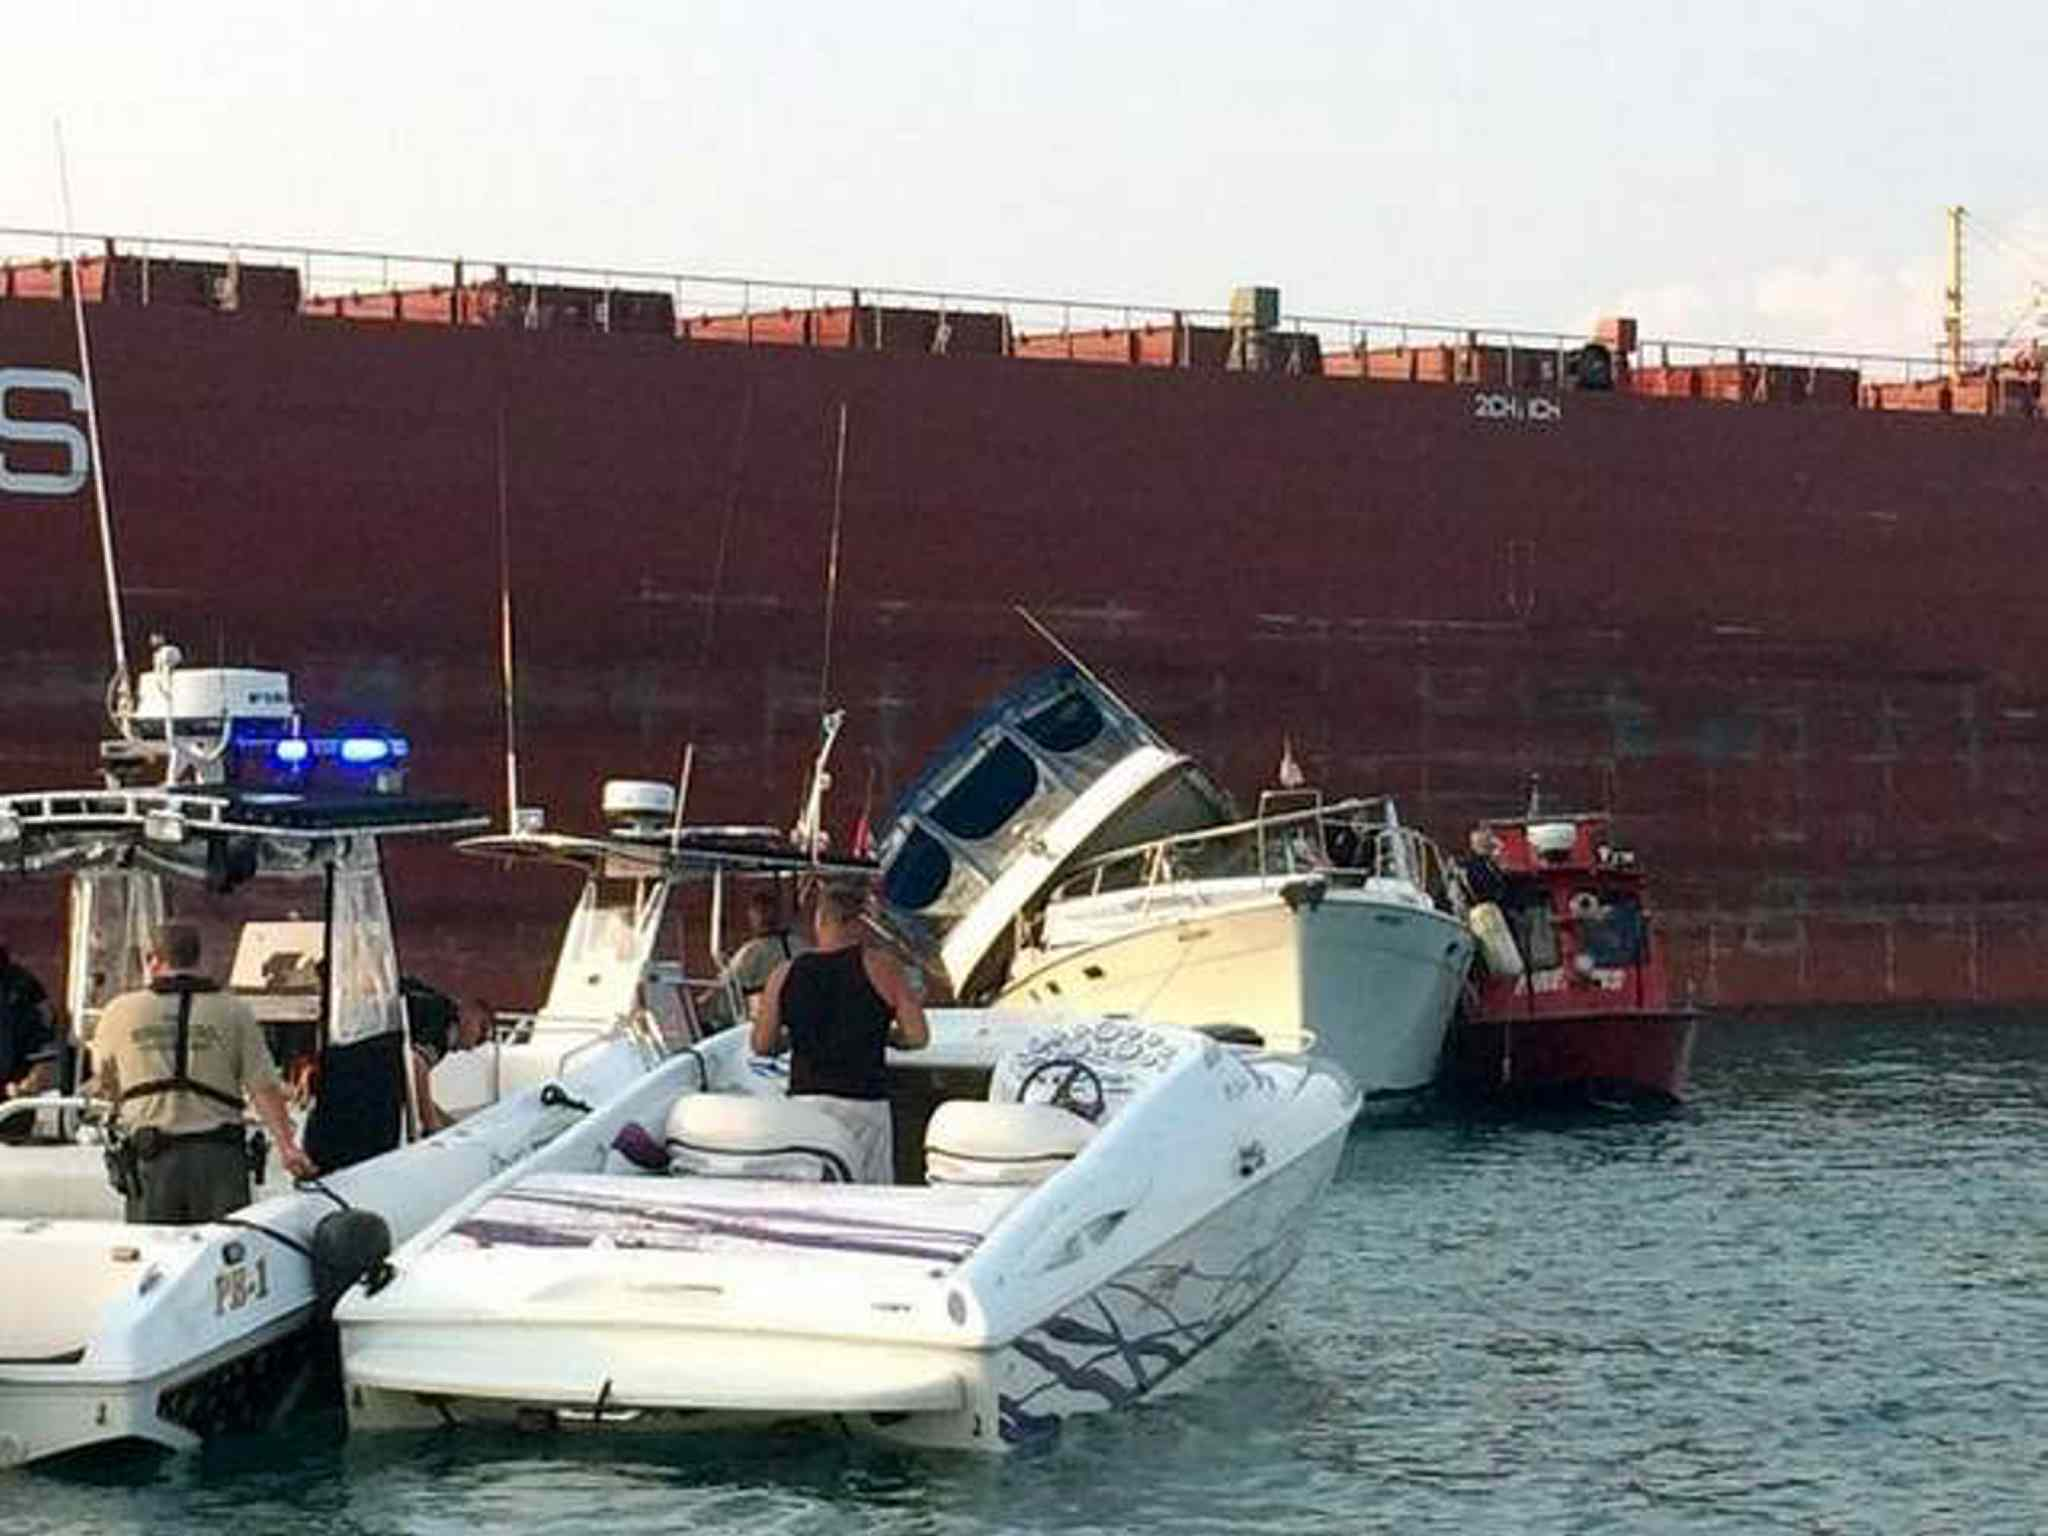 Nancy Axford, 68, was killed Sunday when a Baja speedboat slammed into the port side of a Bayliner cabin cruiser in the south channel of the St. Clair River.